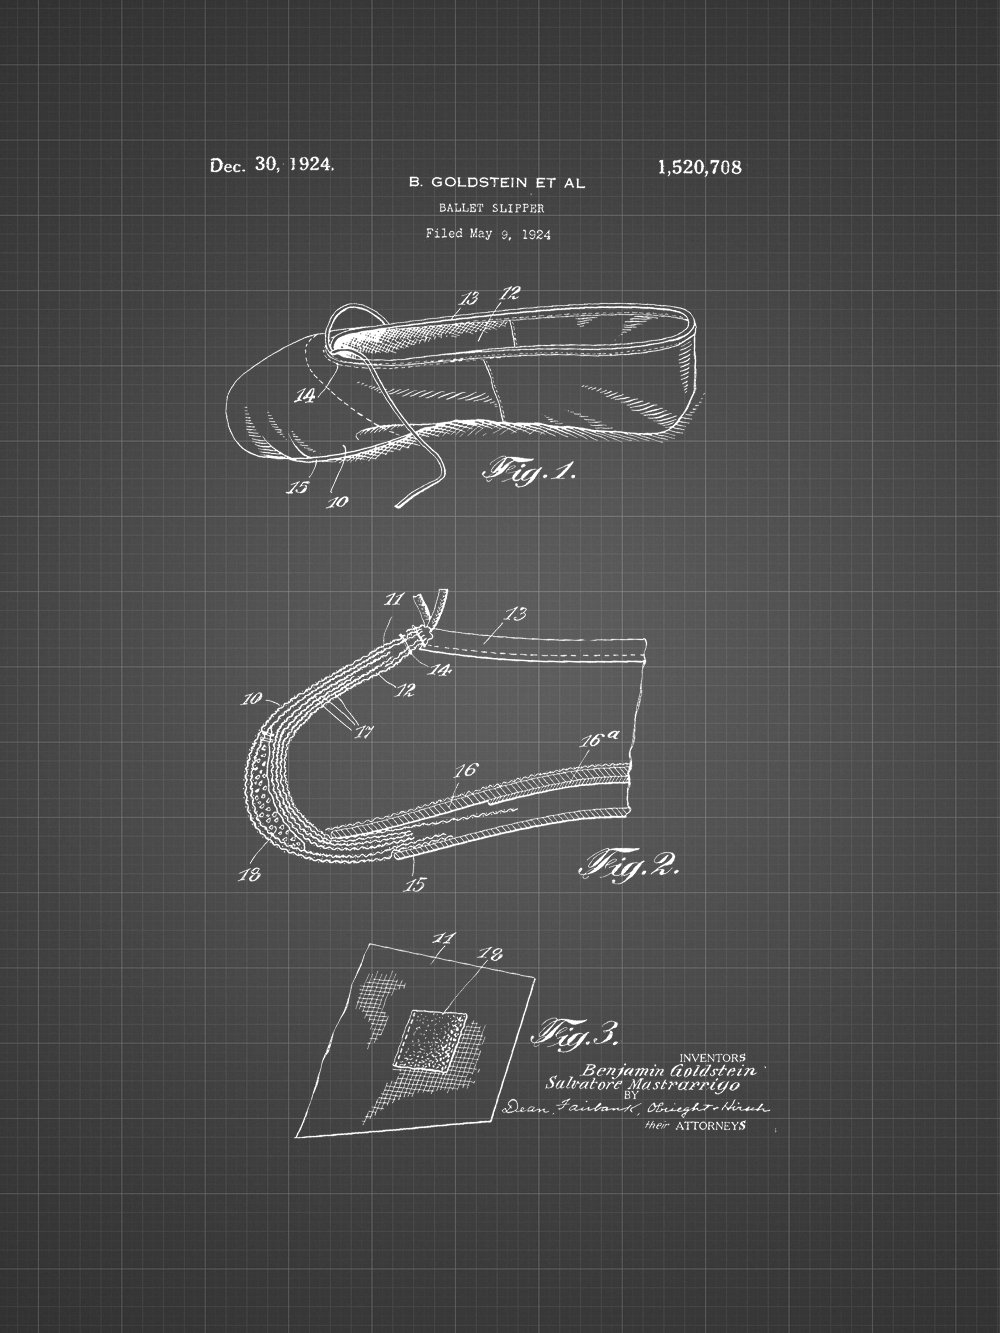 Framable Patent Art The Original Ready to Frame D/écor Ballet Slipper Dance Shoe Footwear 8in by 10in Patent Art Poster Print Black Blueprint PAPXSSP50BB